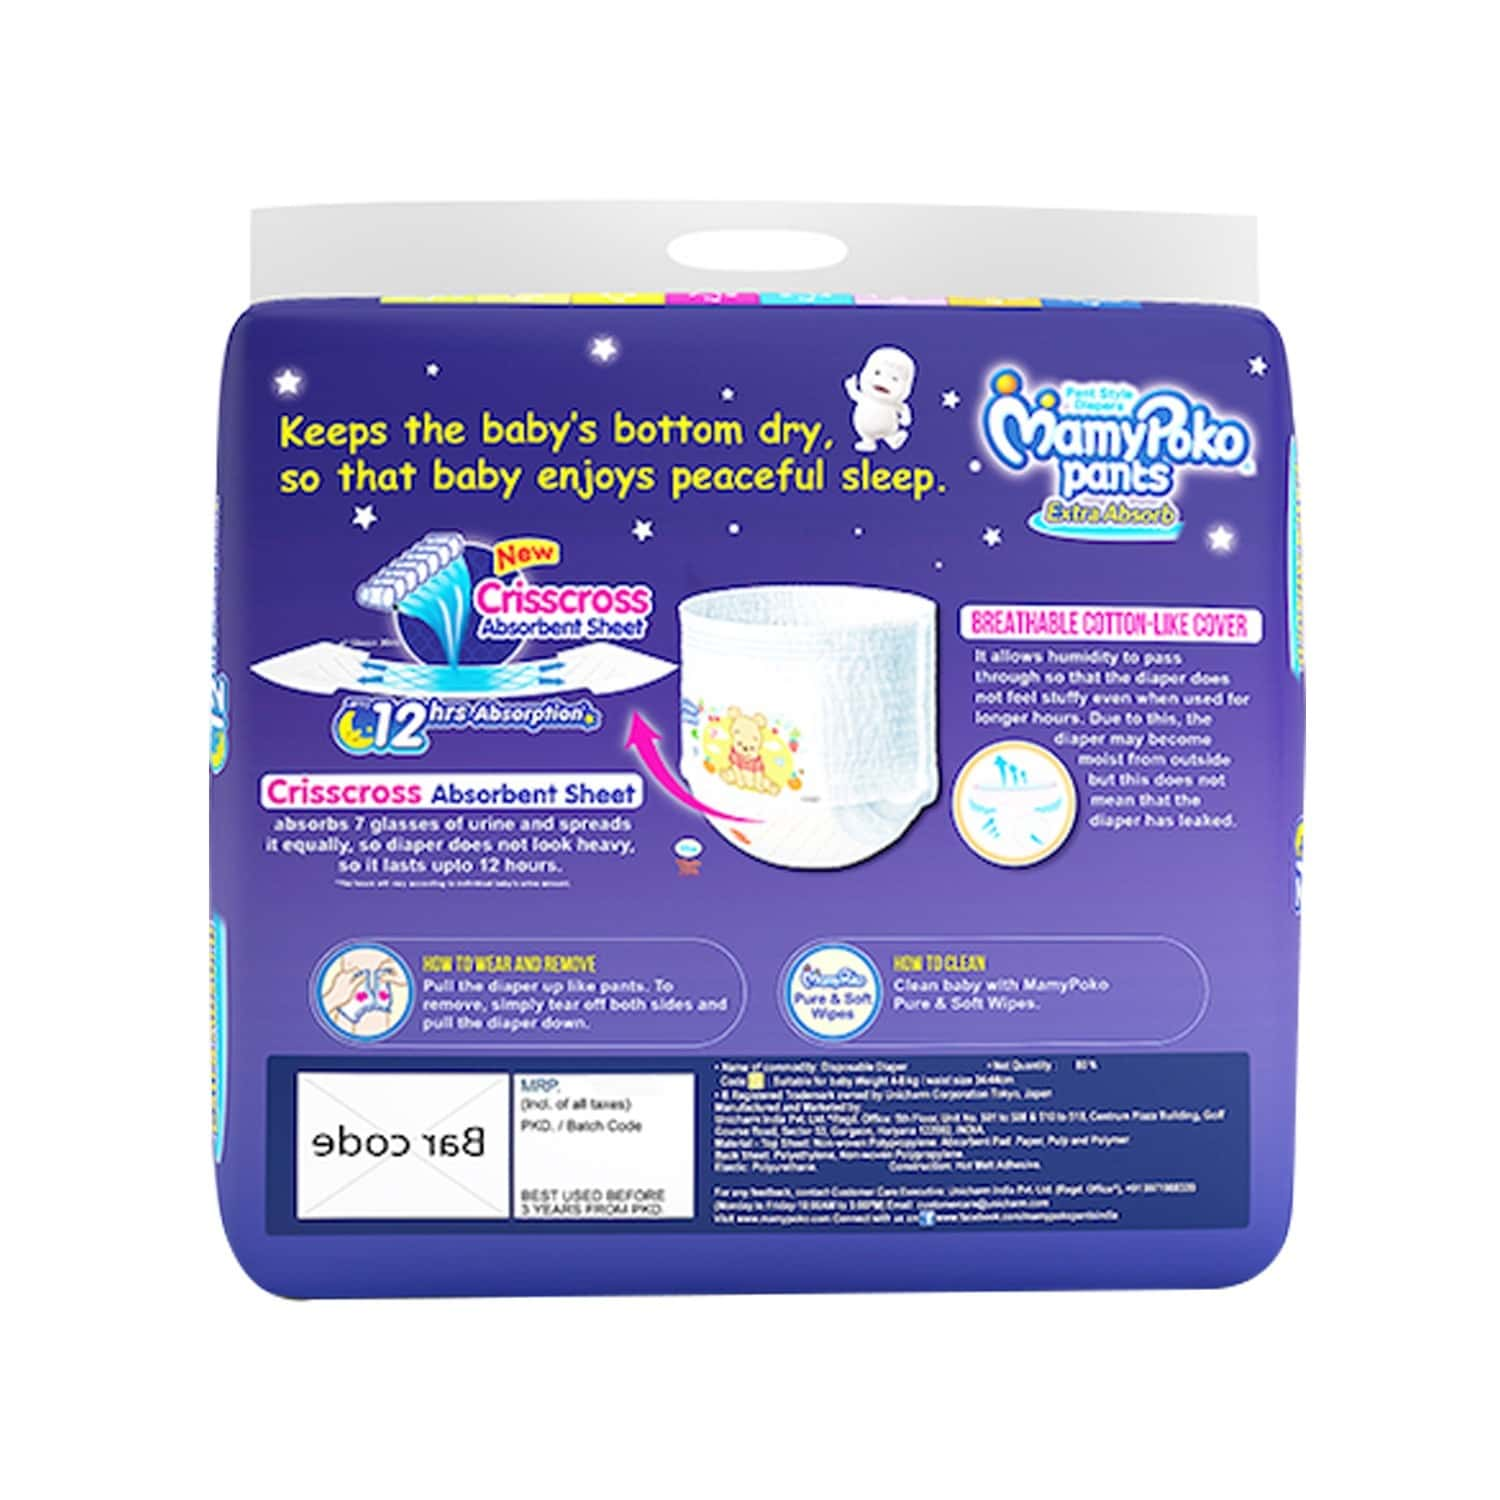 Mamypoko Pants Extra Absorb Diaper Small Size Pack Of 80